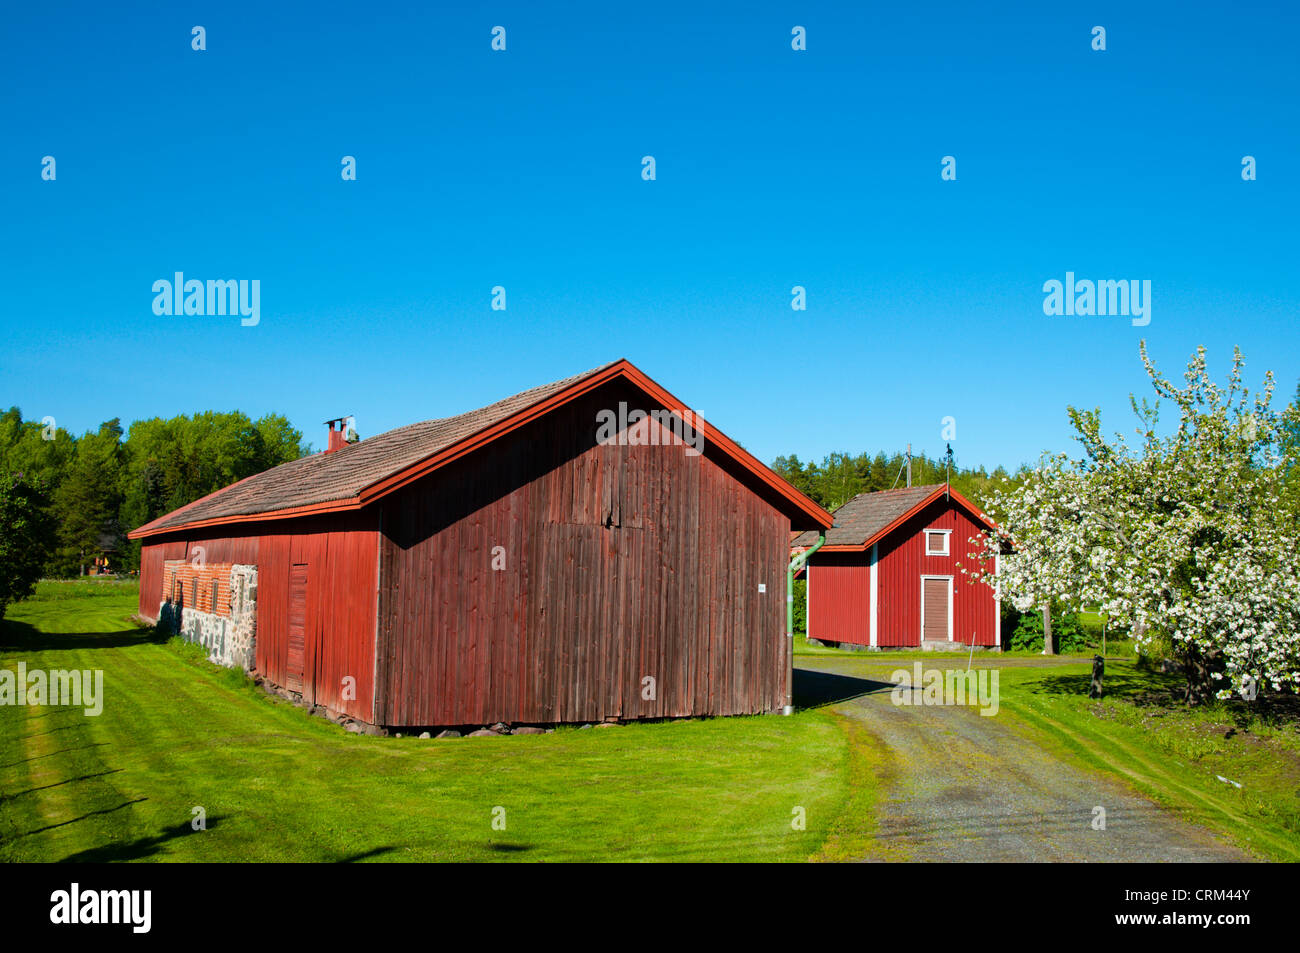 Wooden shed and storage buildings Hyvelä district Pori Finland Europe - Stock Image